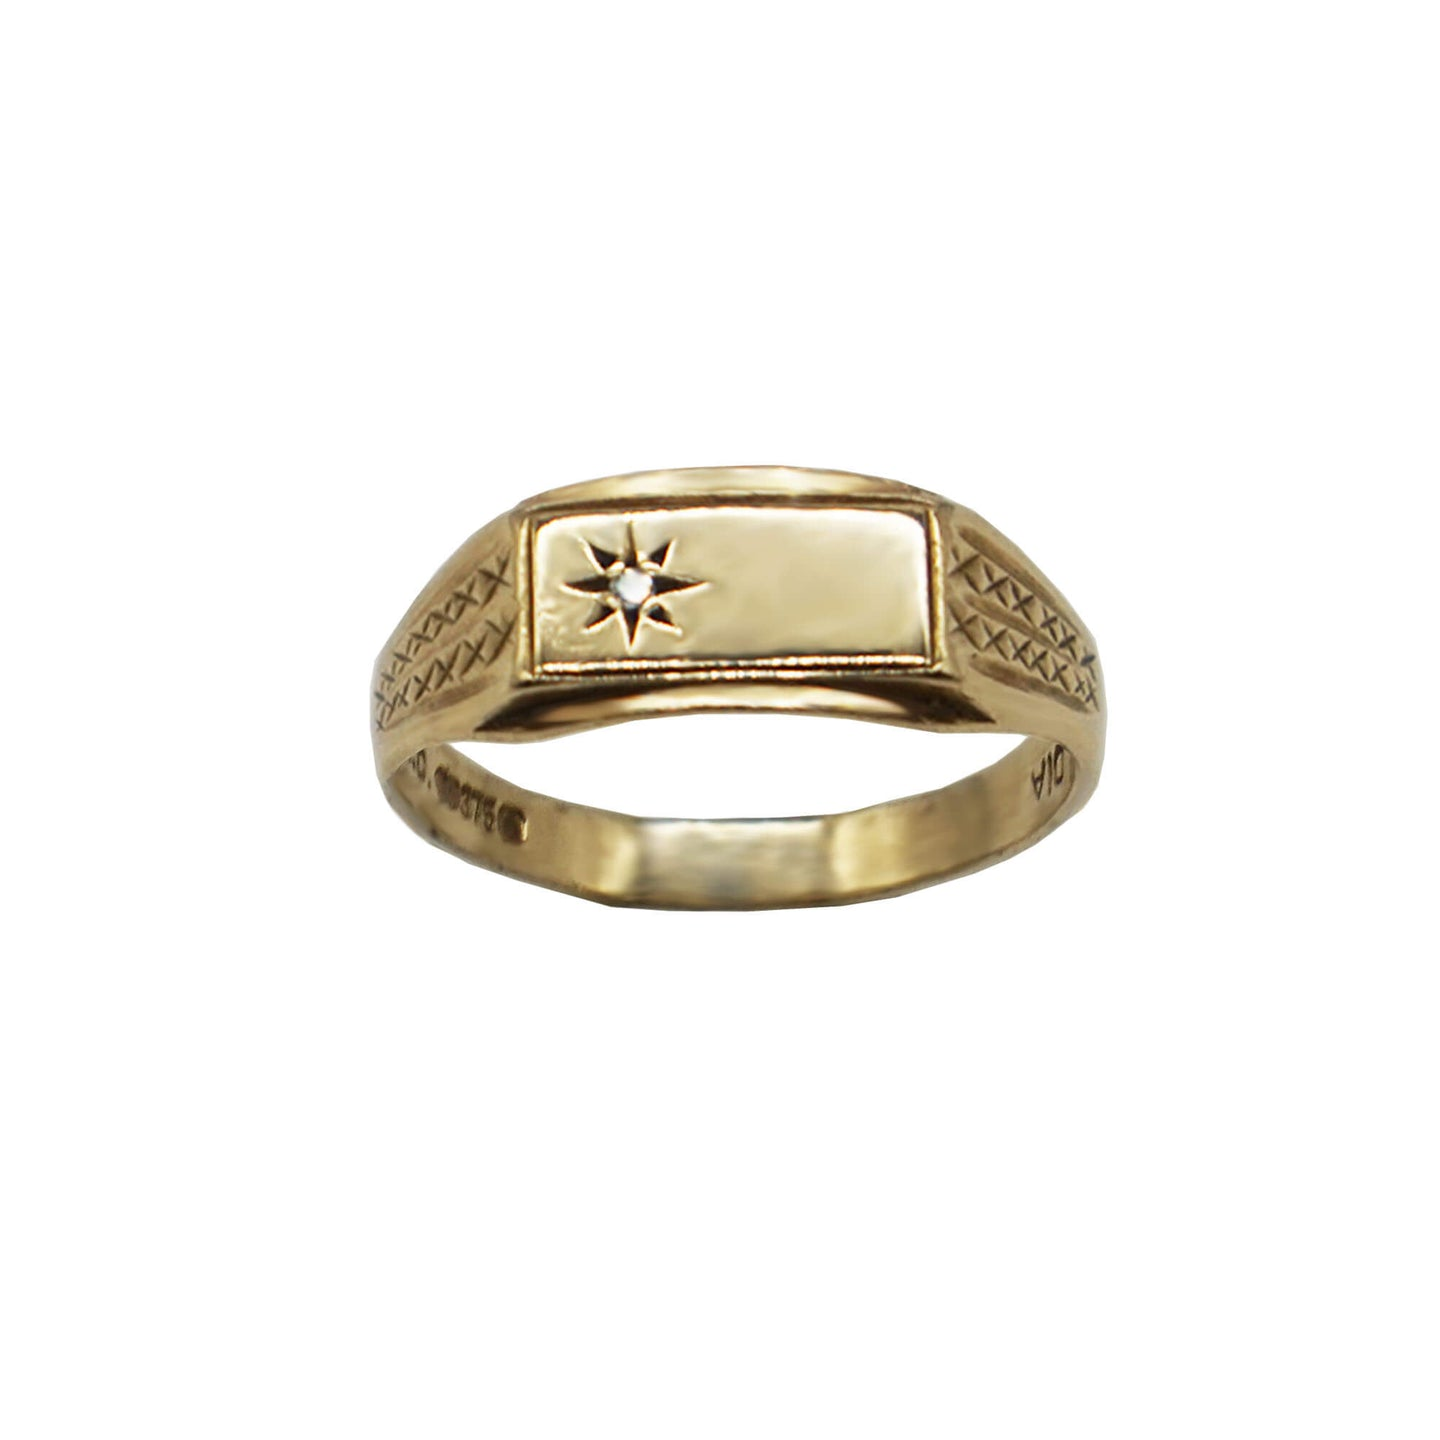 Vintage 9K Gold Diamond Starburst Set Slim rectangle signet ring with kiss/ cross small etchings on the sides. White background.